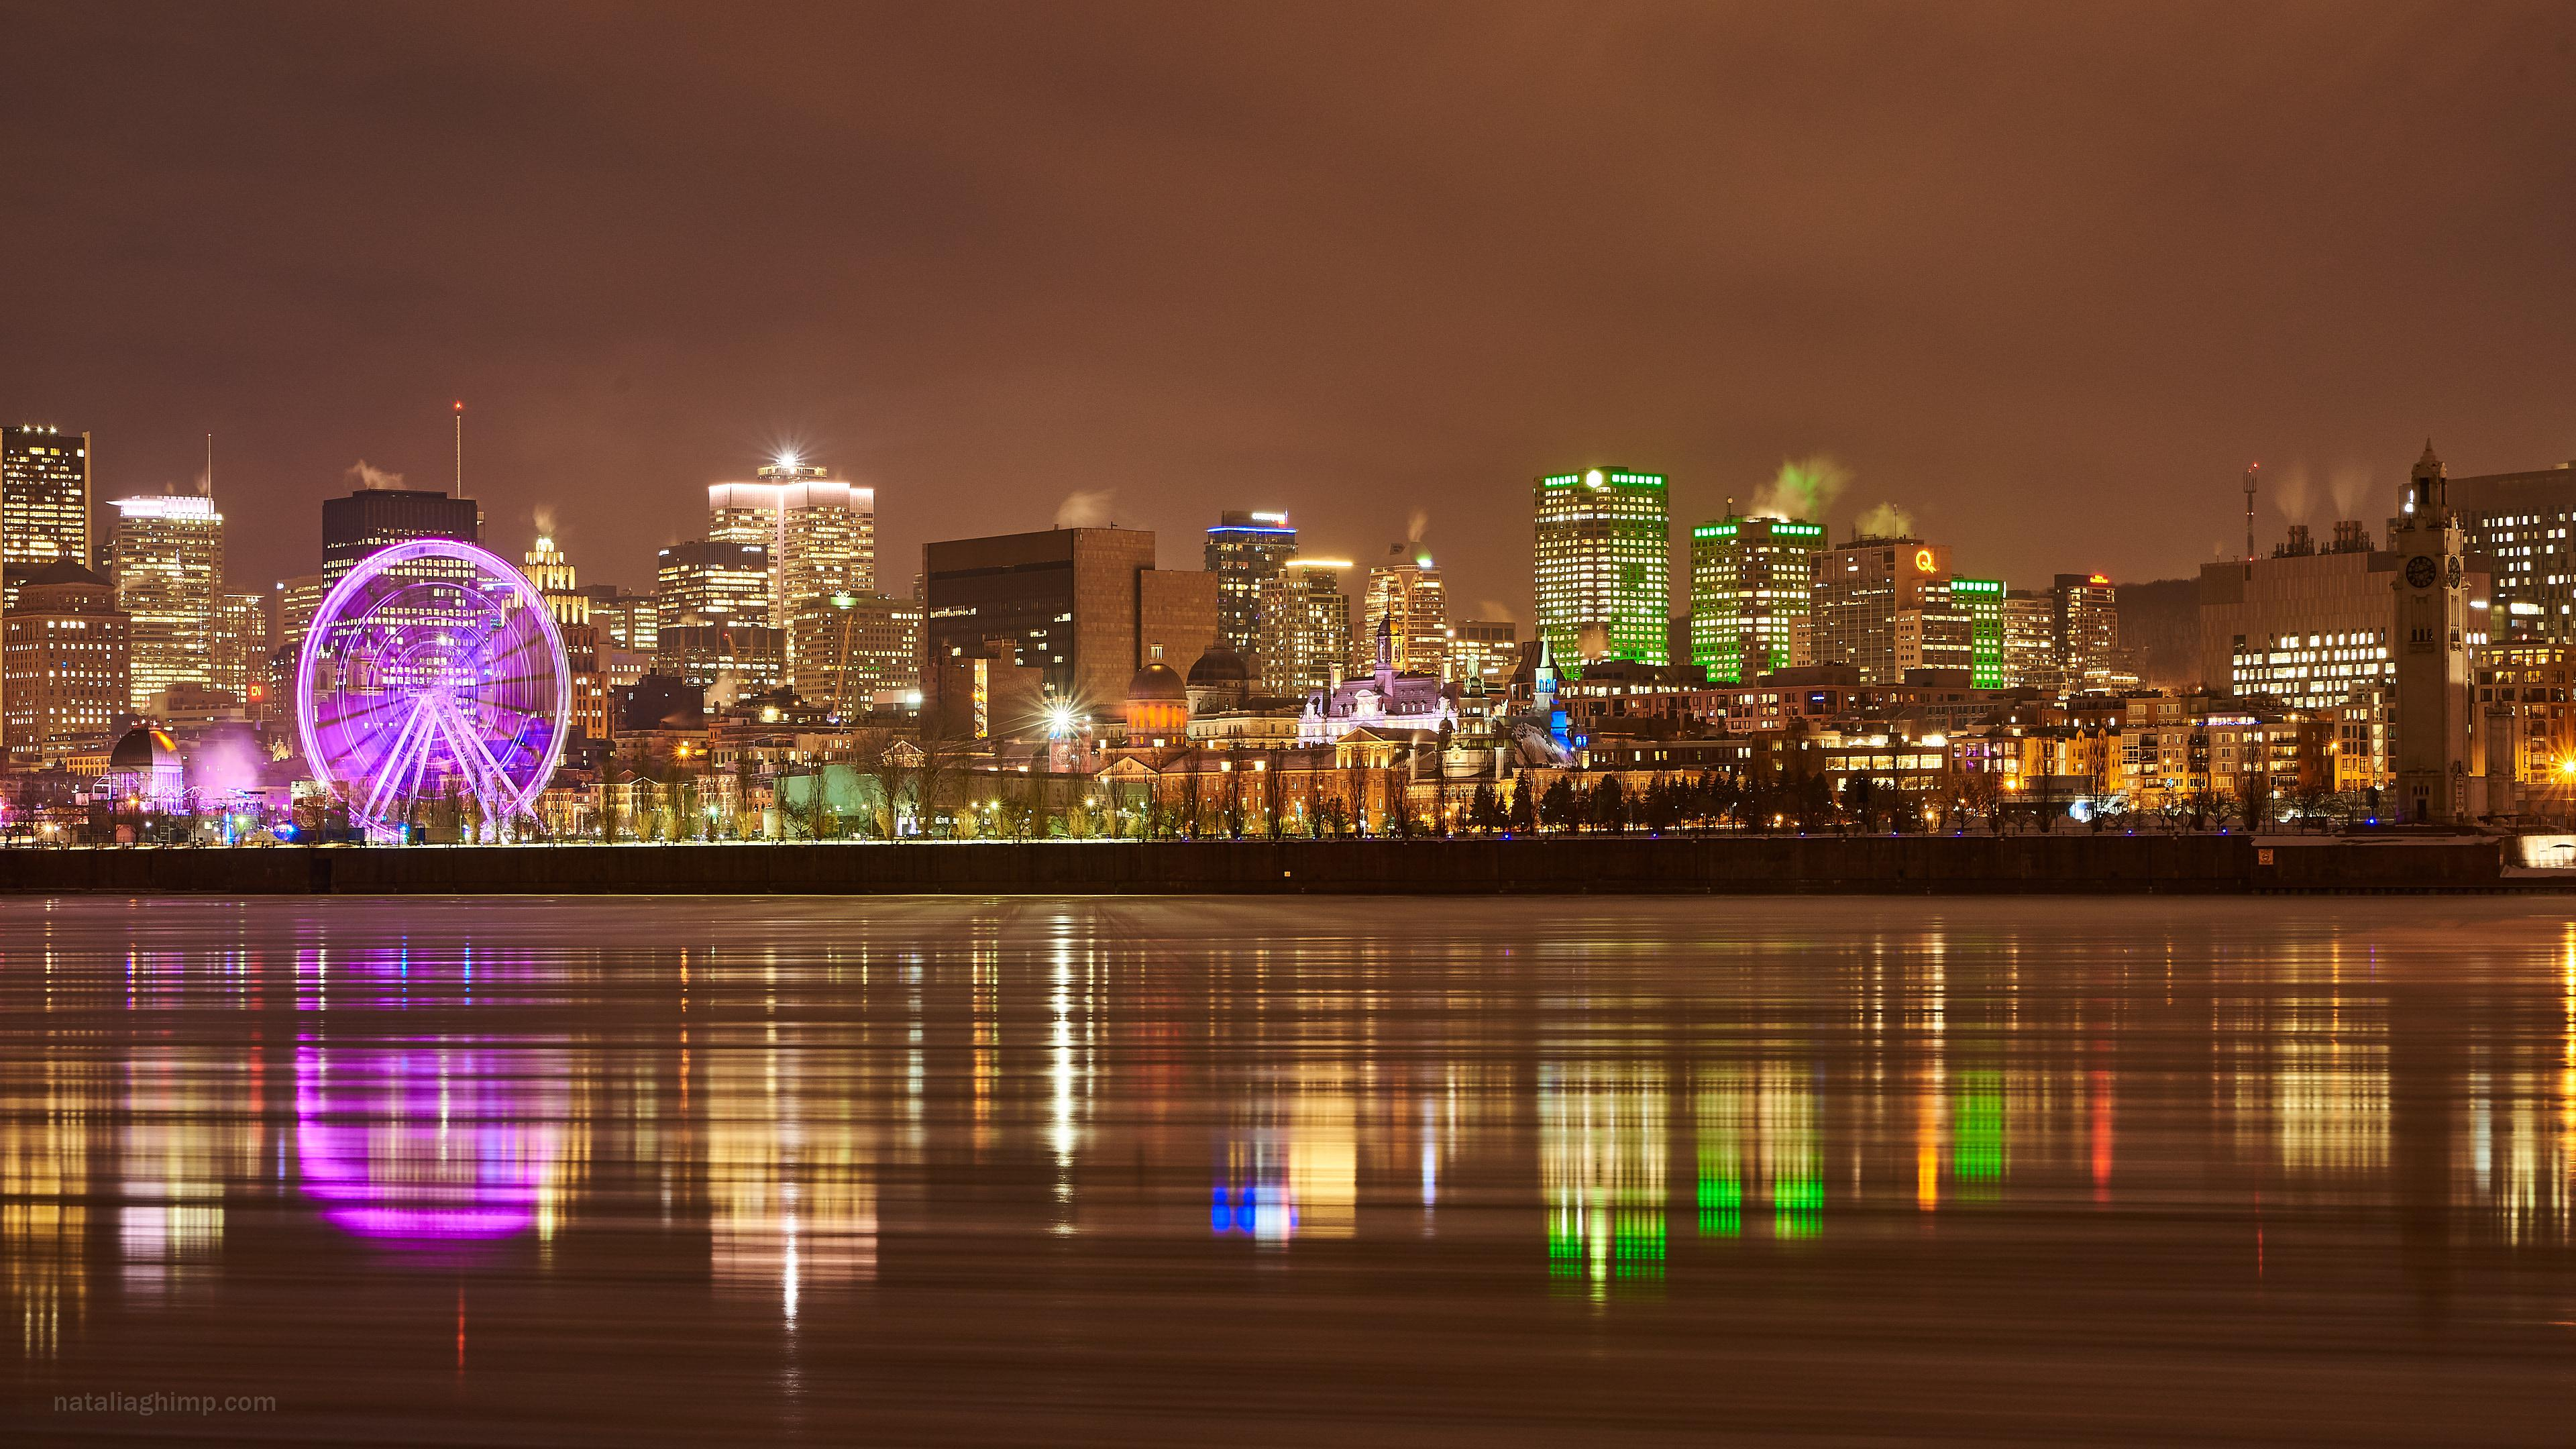 Montreal 4k Wallpapers For Your Desktop Or Mobile Screen